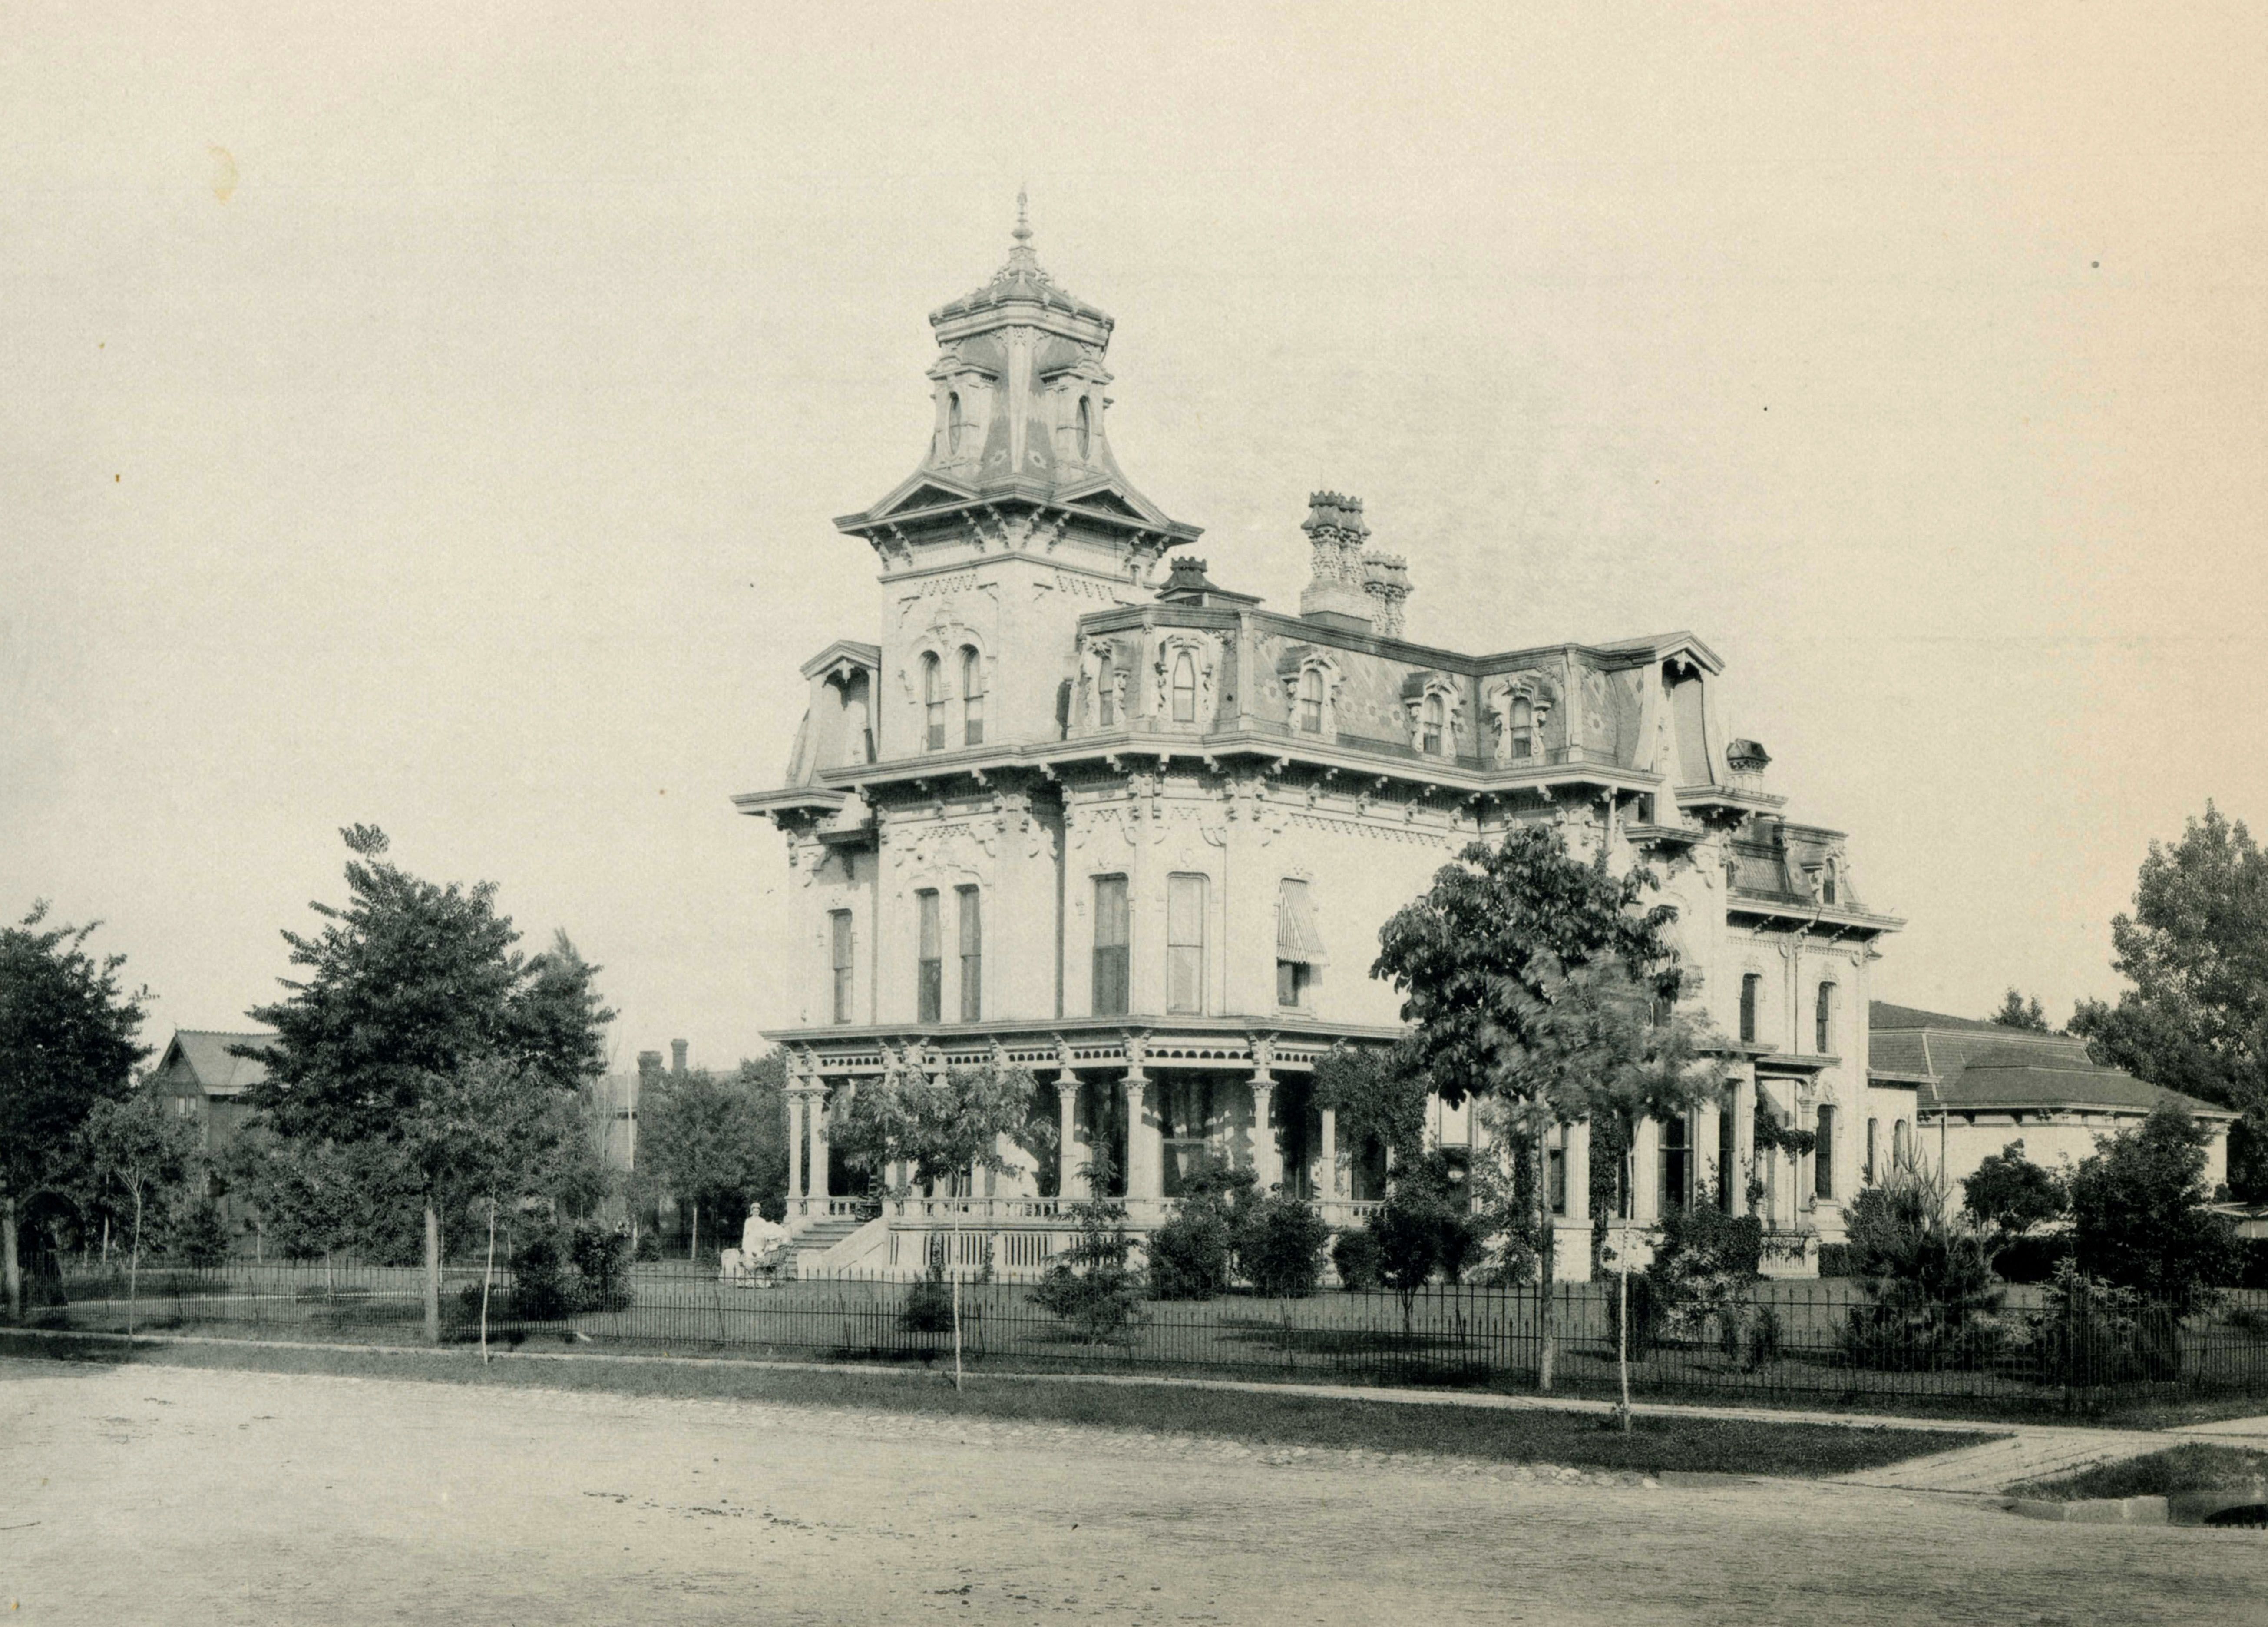 Saginaw's Webber Mansion from Folly to Pride and now a Parking Lot